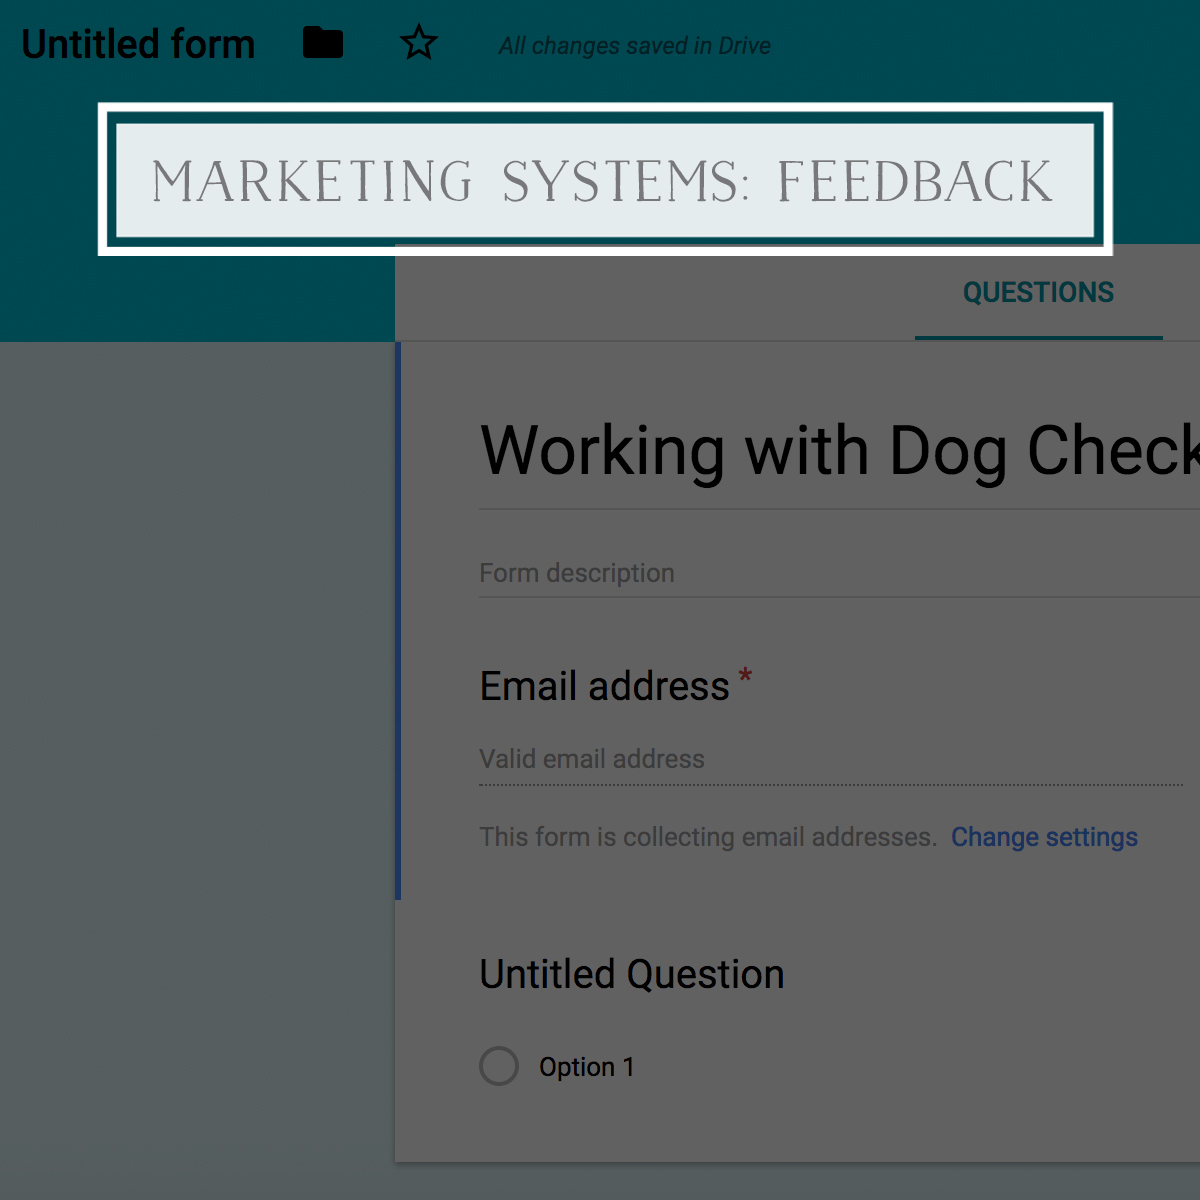 Marketing Systems: Feedback